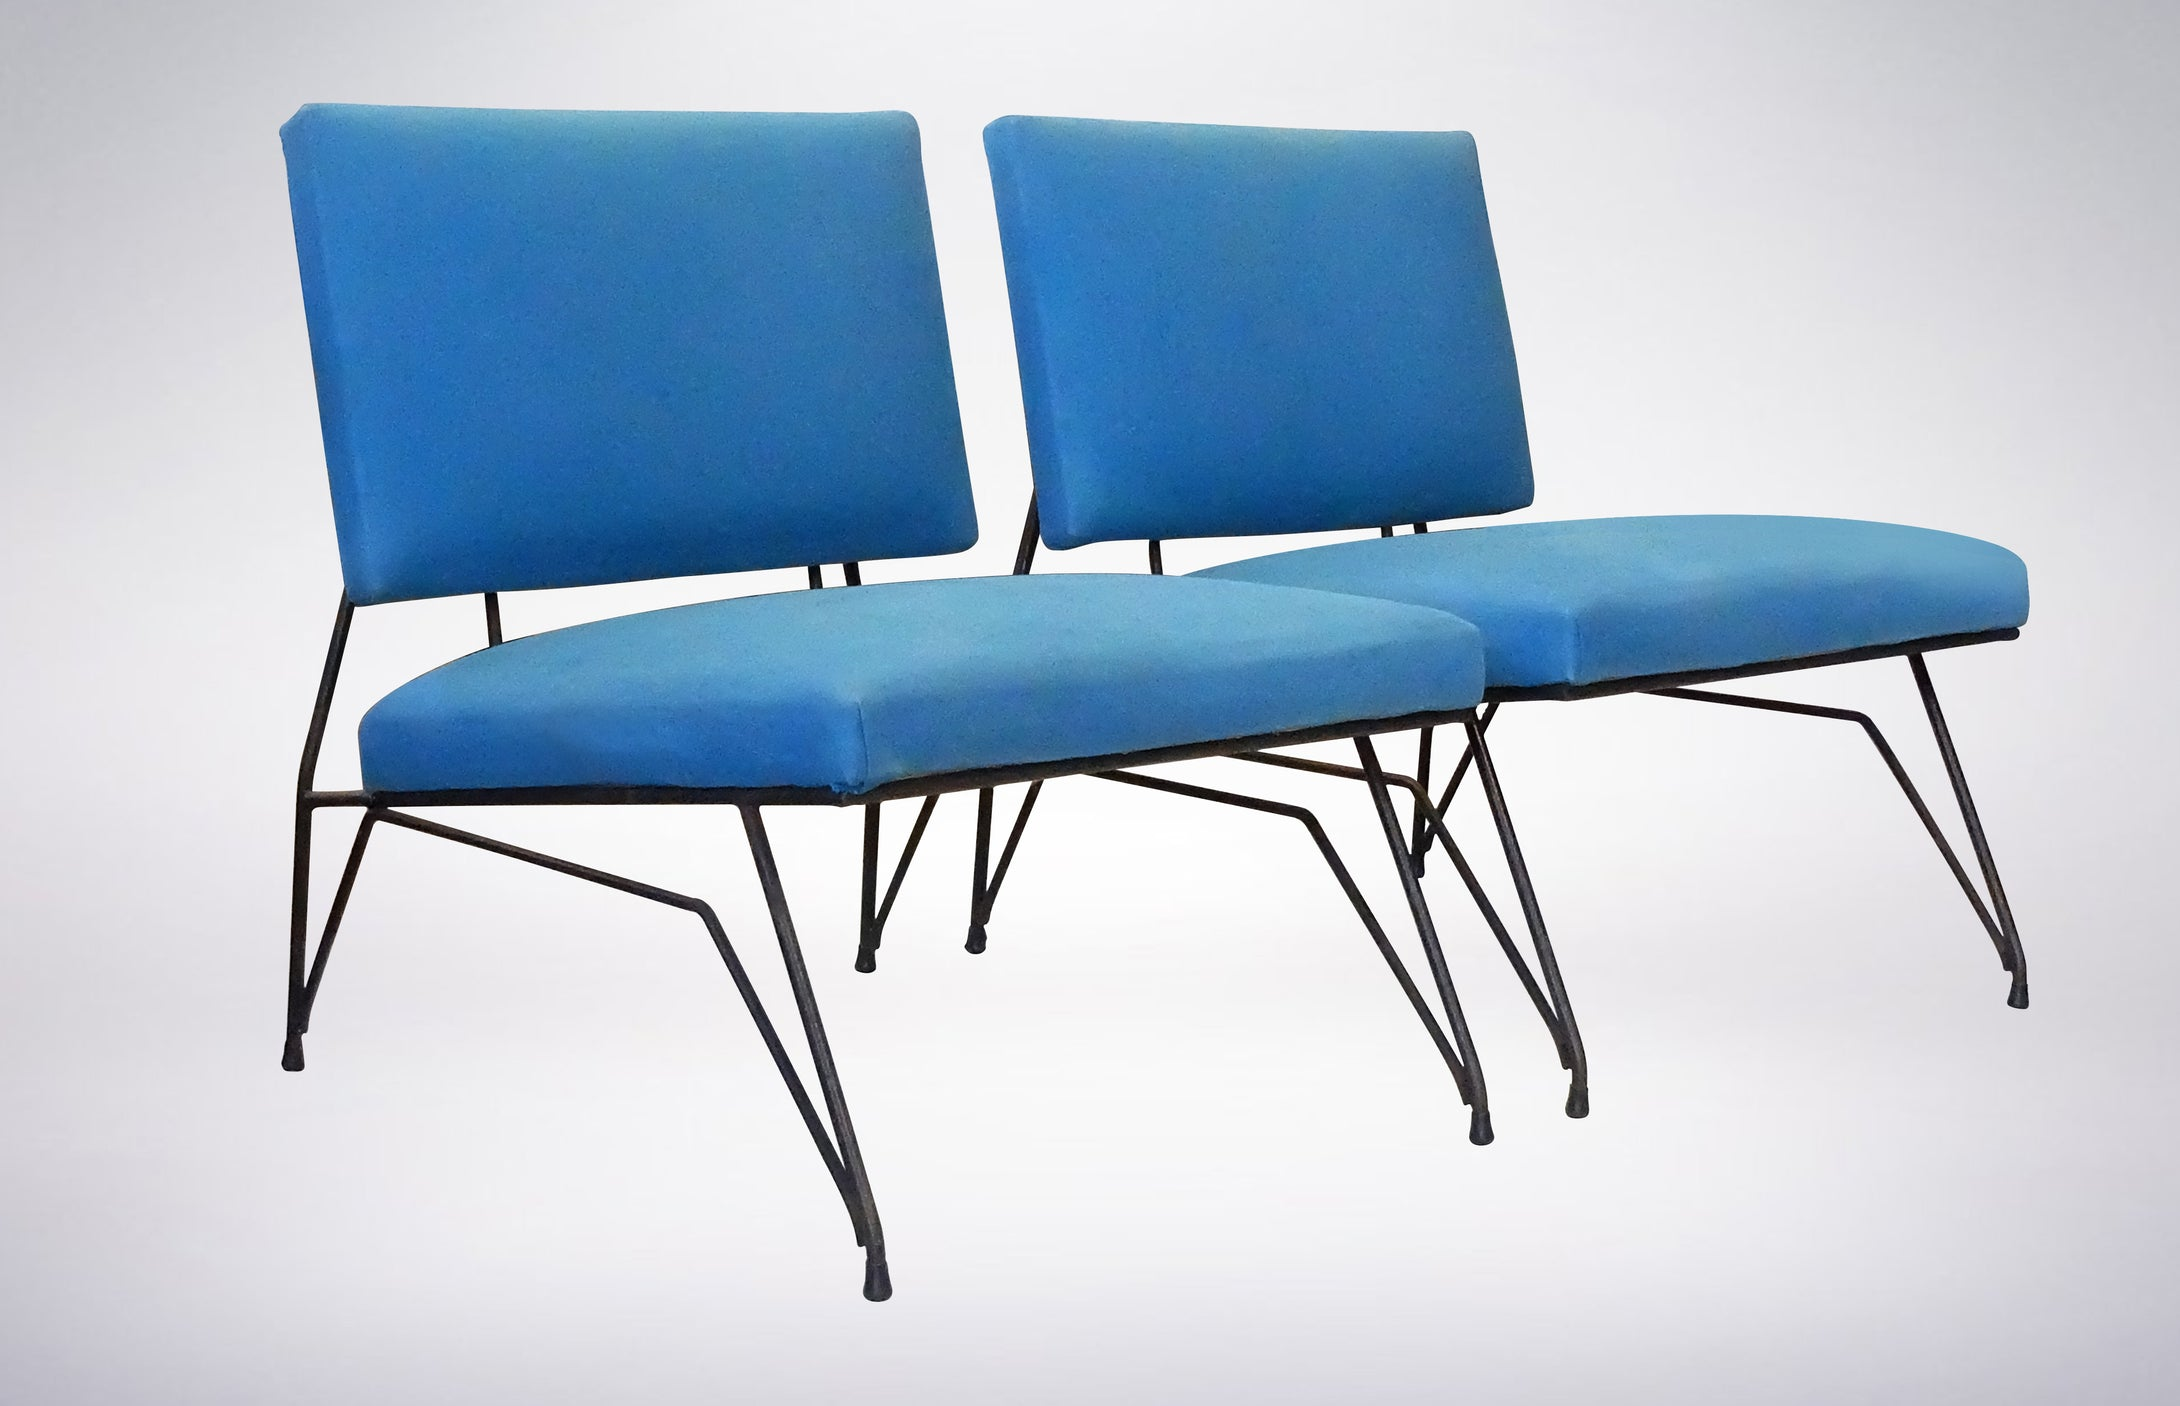 Elegant Pair of Modernist Armchairs in Lush Blue Upholstery